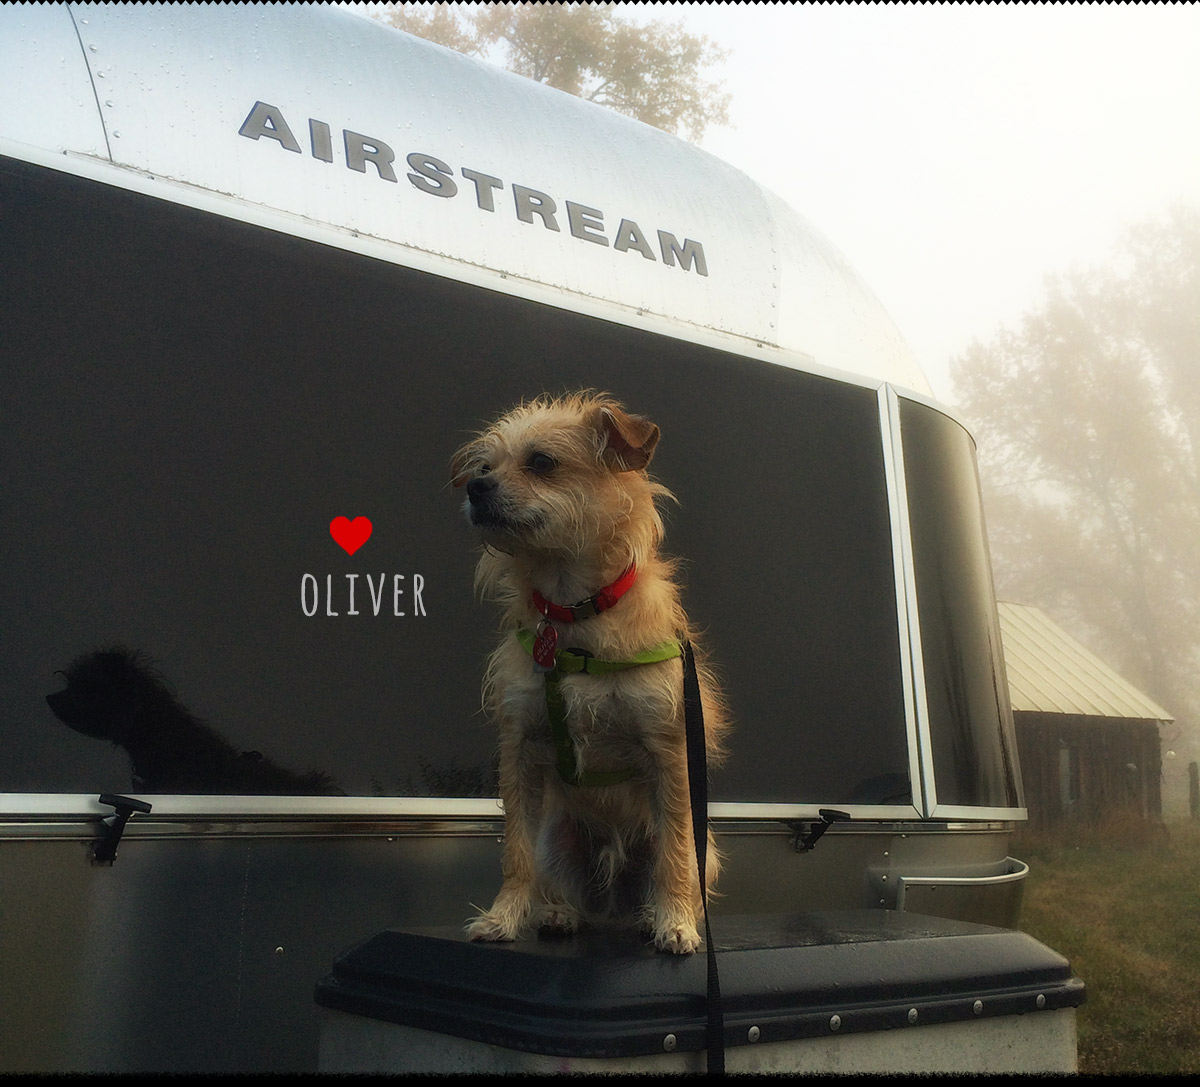 Airstream glamping with Oliver our dog